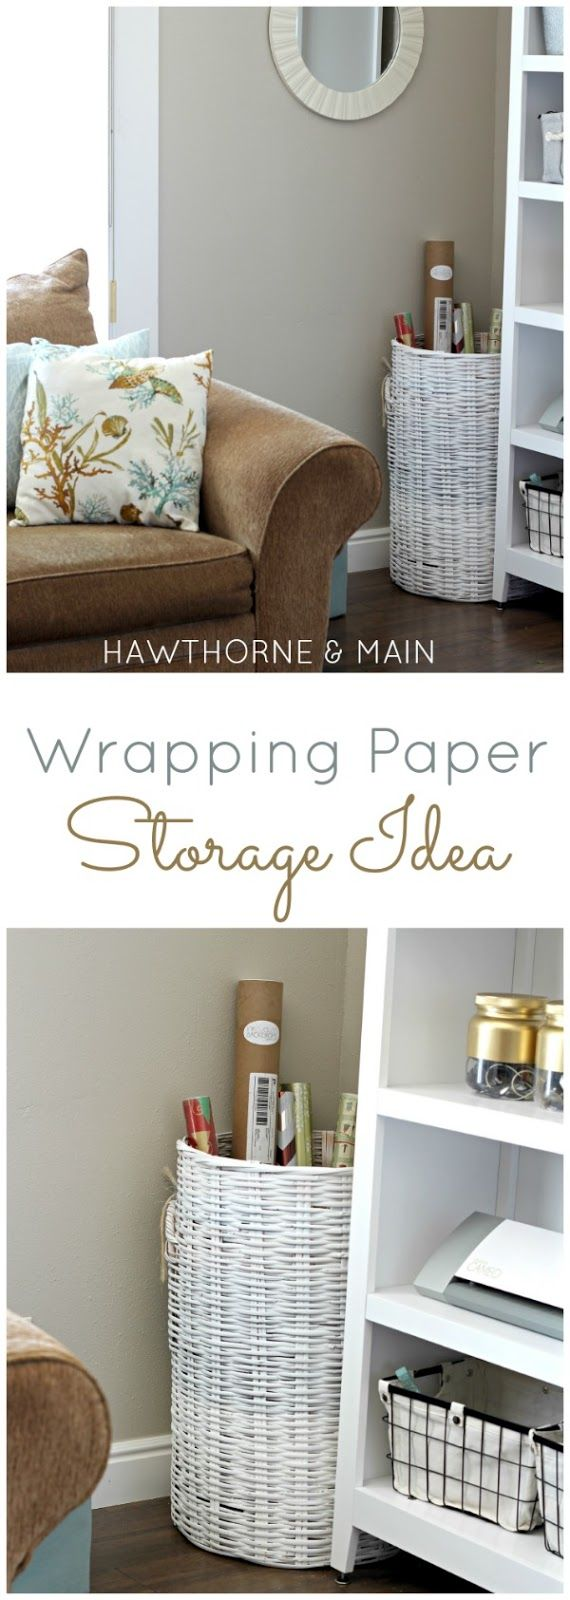 Gift wrapping supplies can be hard to store.  Come see how I finally got mine under control and organized!!